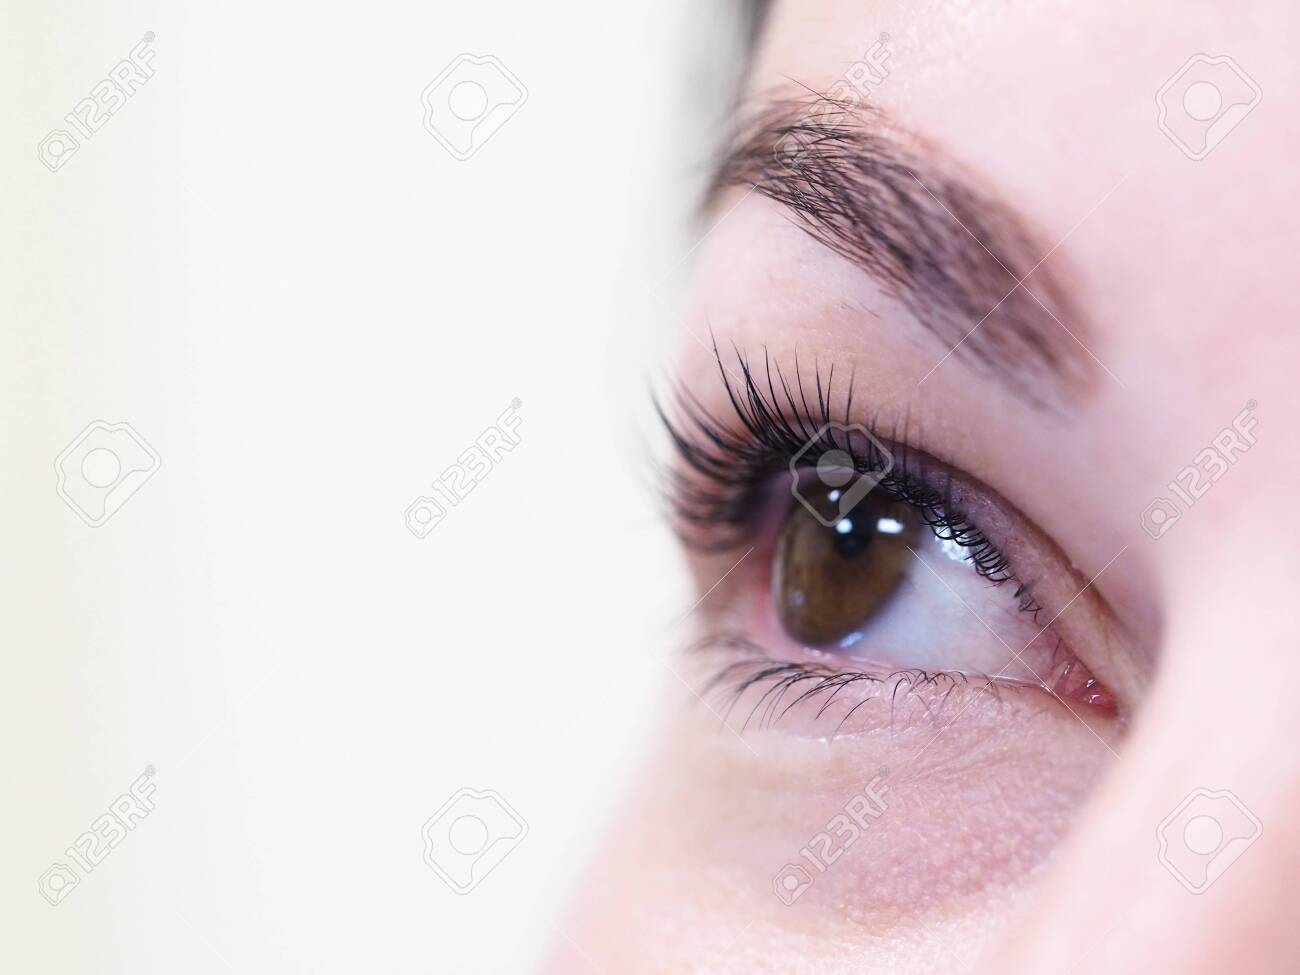 Cosmetic procedure for the care of eyelashes. The result of dyeing, waving and laminating eyelashes. - 129223693